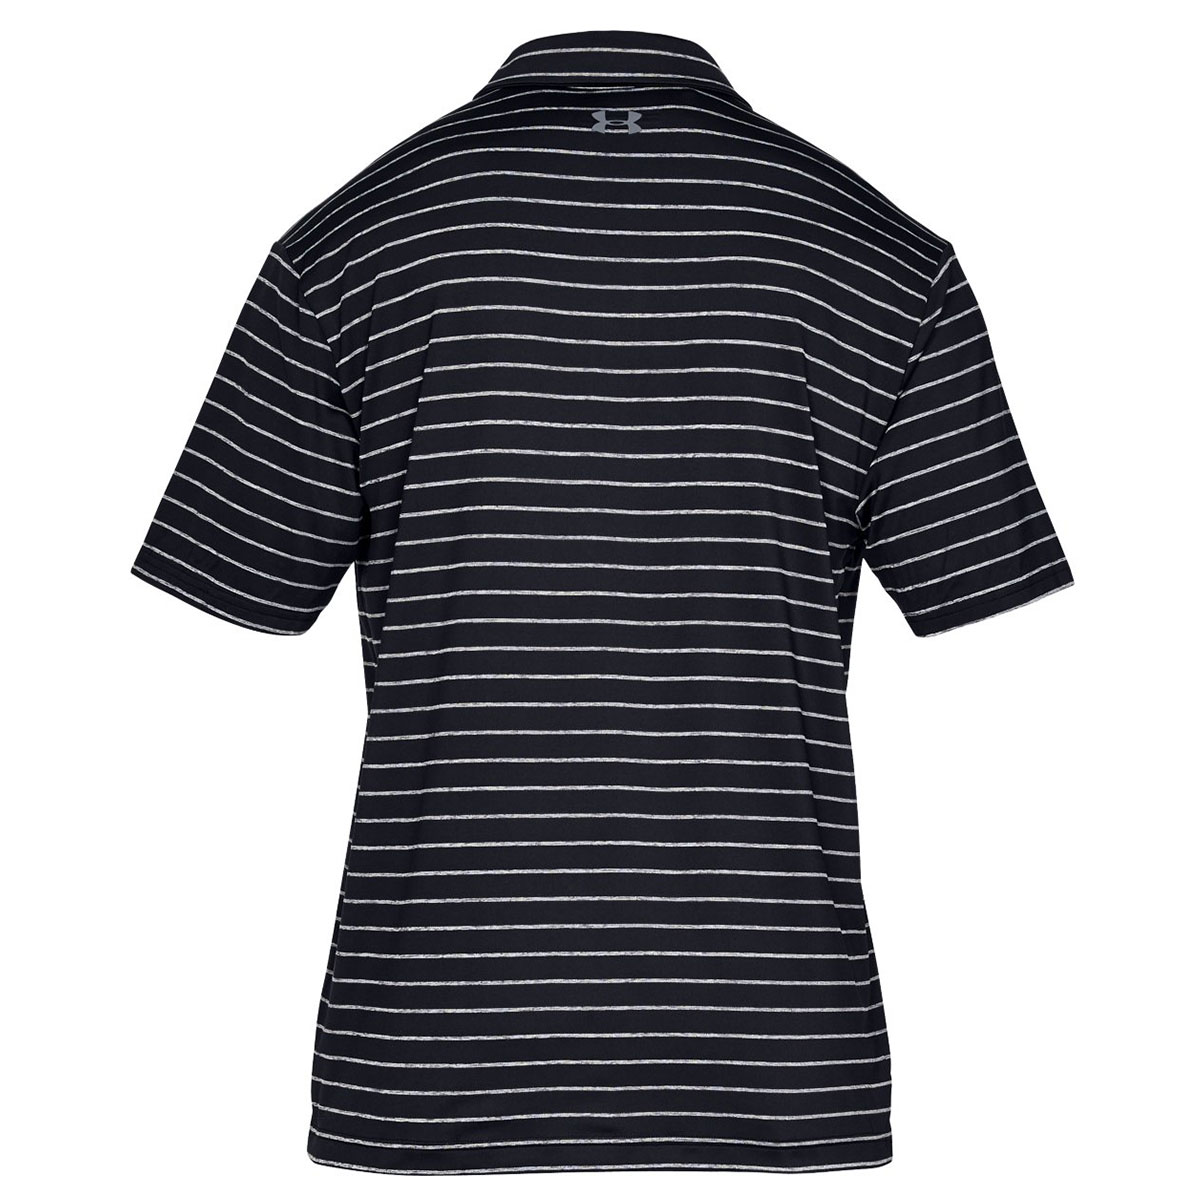 Under-Armour-Mens-2019-Playoff-Polo-2-0-Breathable-Light-Stretch-Polo-Shirt thumbnail 51